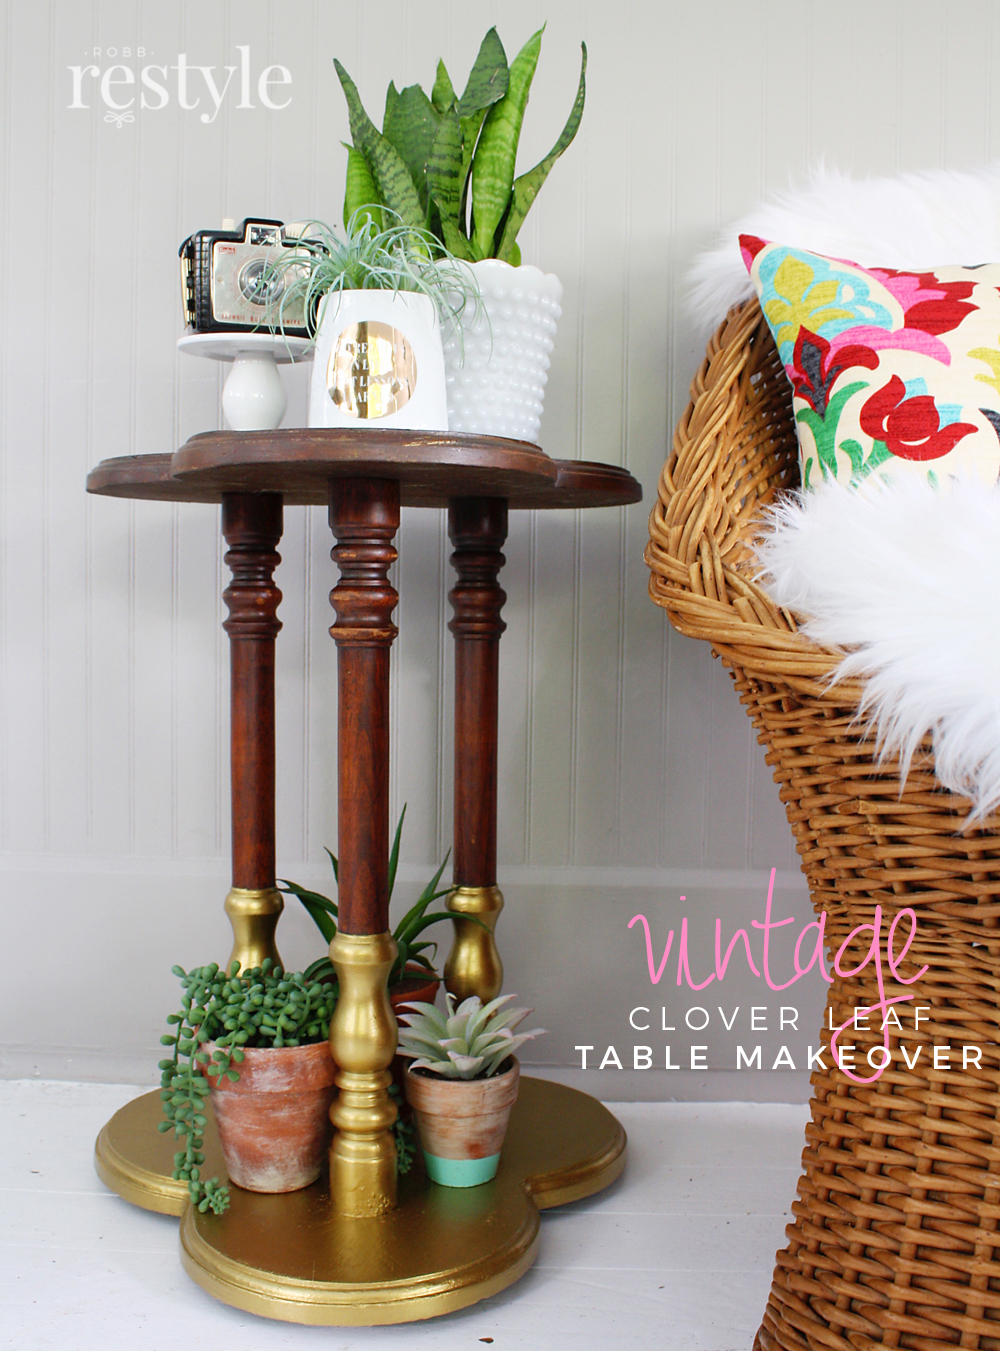 DIY Vintage Clover Leaf Mid Century Table Makeover